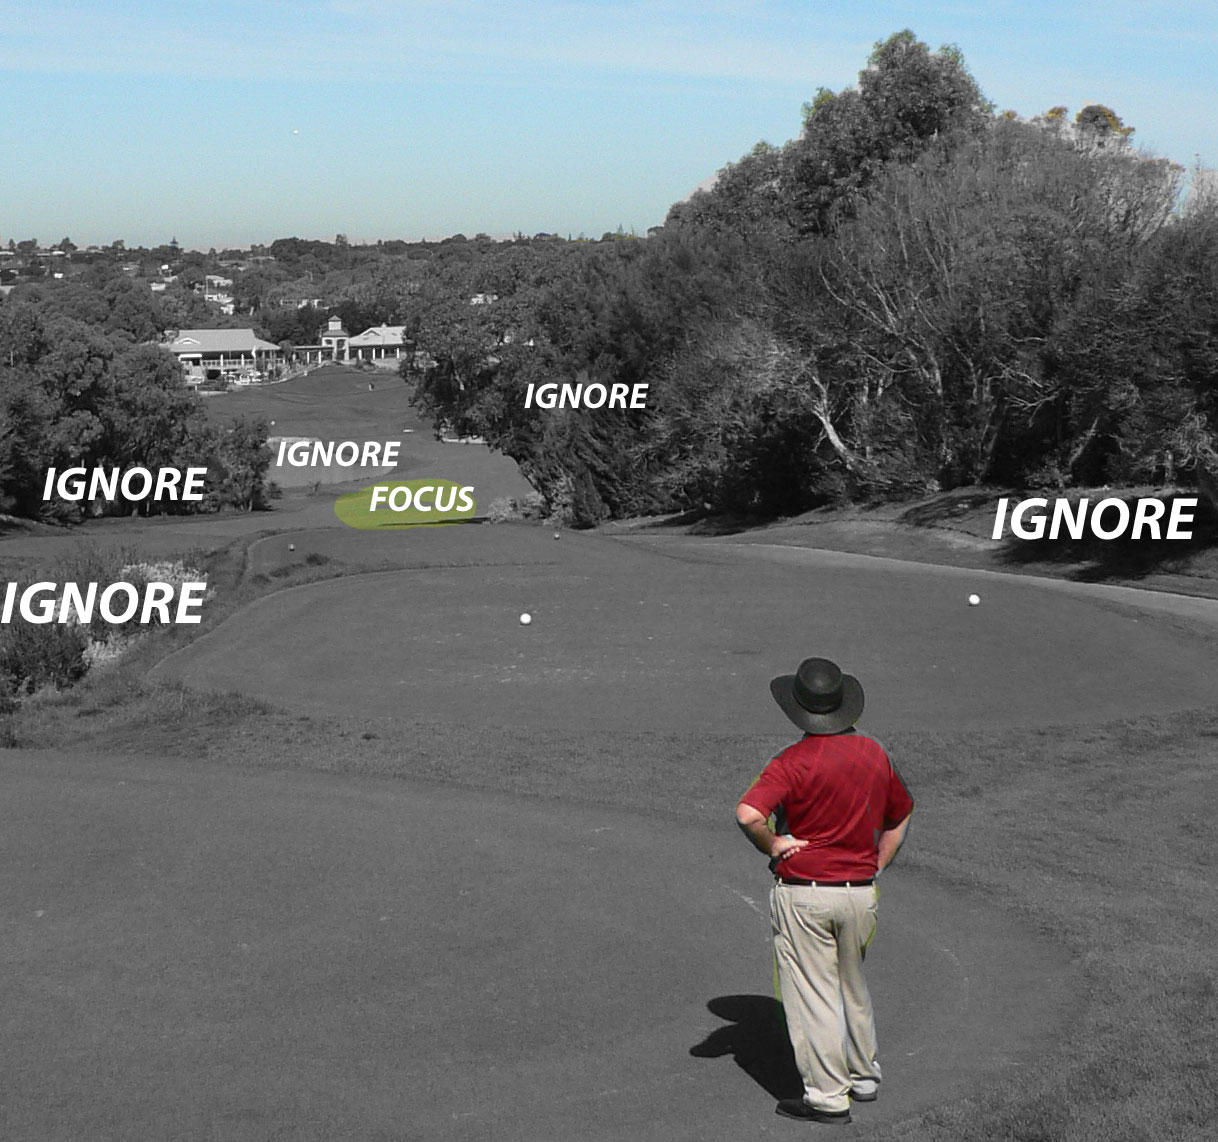 Narrow your FOCUS for better tee shots